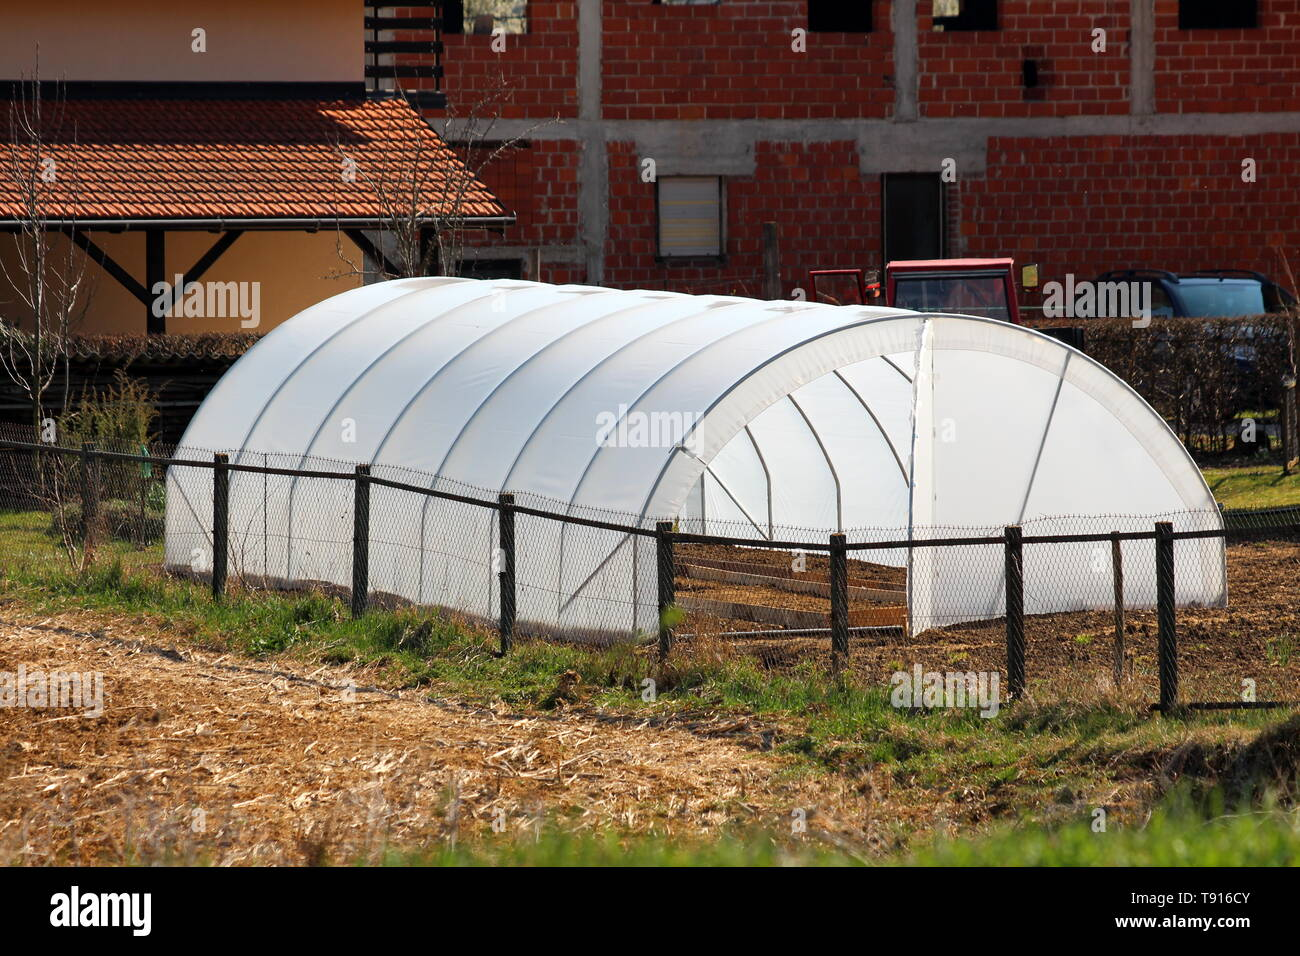 New backyard garden greenhouse made of metal pipes and white opaque nylon placed in local garden behind family house surrounded with dry soil - Stock Image